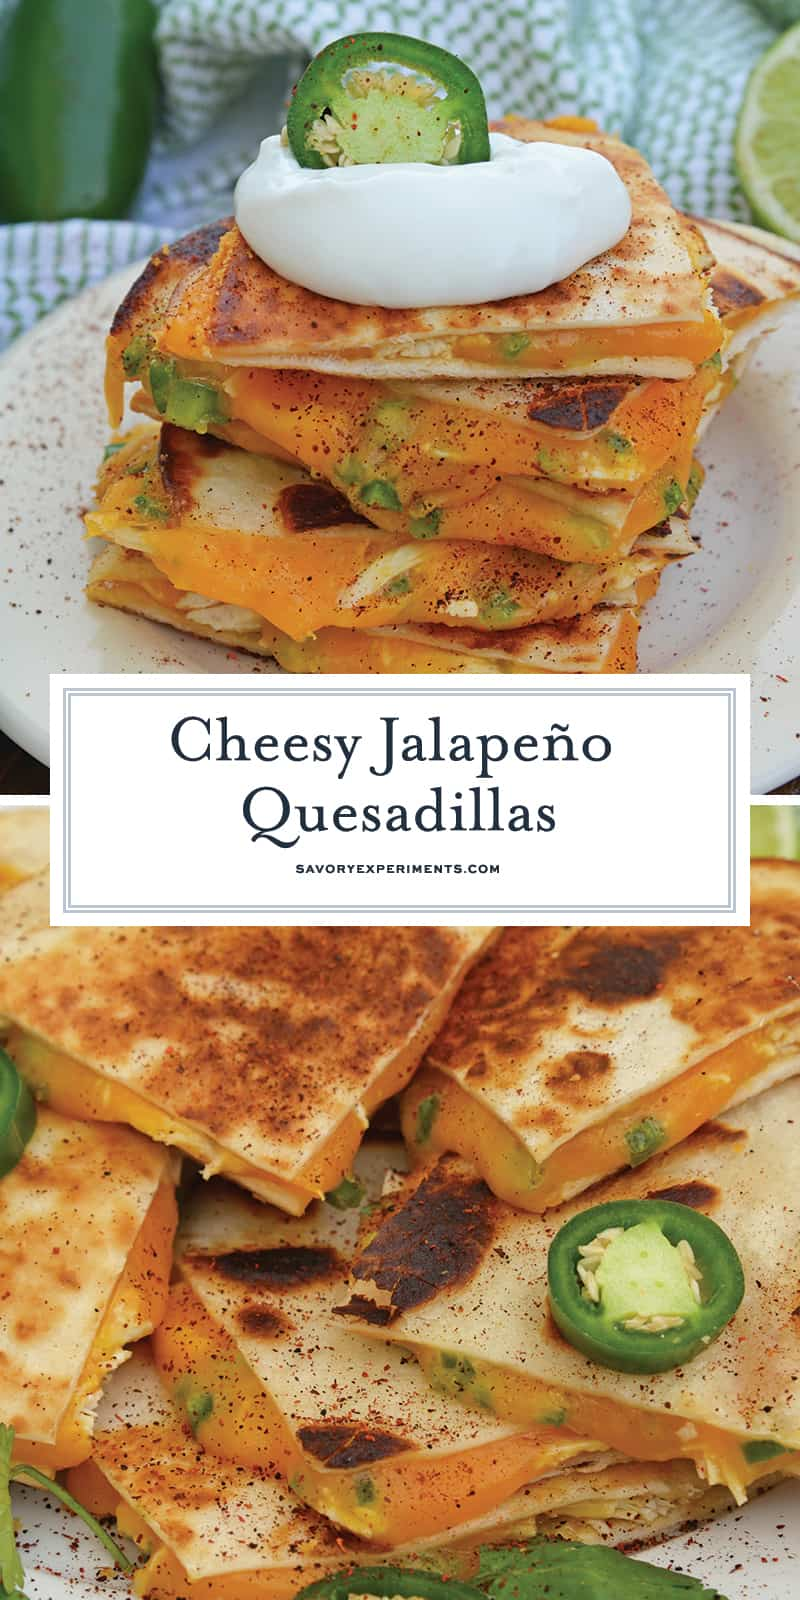 Cheesy, spicy and shareable Cheesy Jalapeño Quesadillas are the gooey appetizer everyone loves. Stacked with cheddar cheese, fresh jalapeños and shredded chicken, they are ready in just 10 minutes! #cheesequesadillas www.savoryexperiments.com